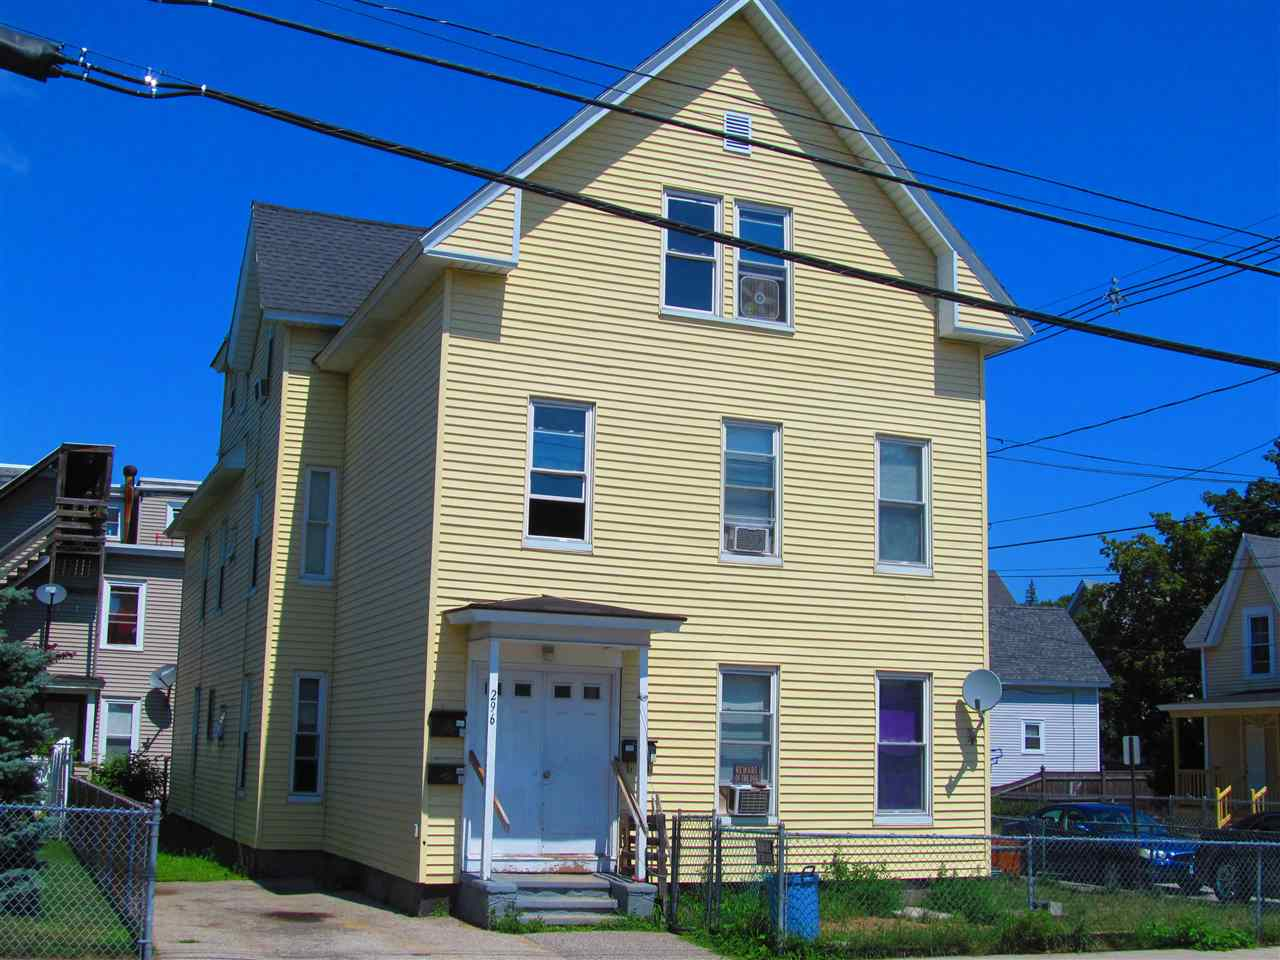 image of Manchester NH  3 Unit Multi Family | sq.ft. 3642